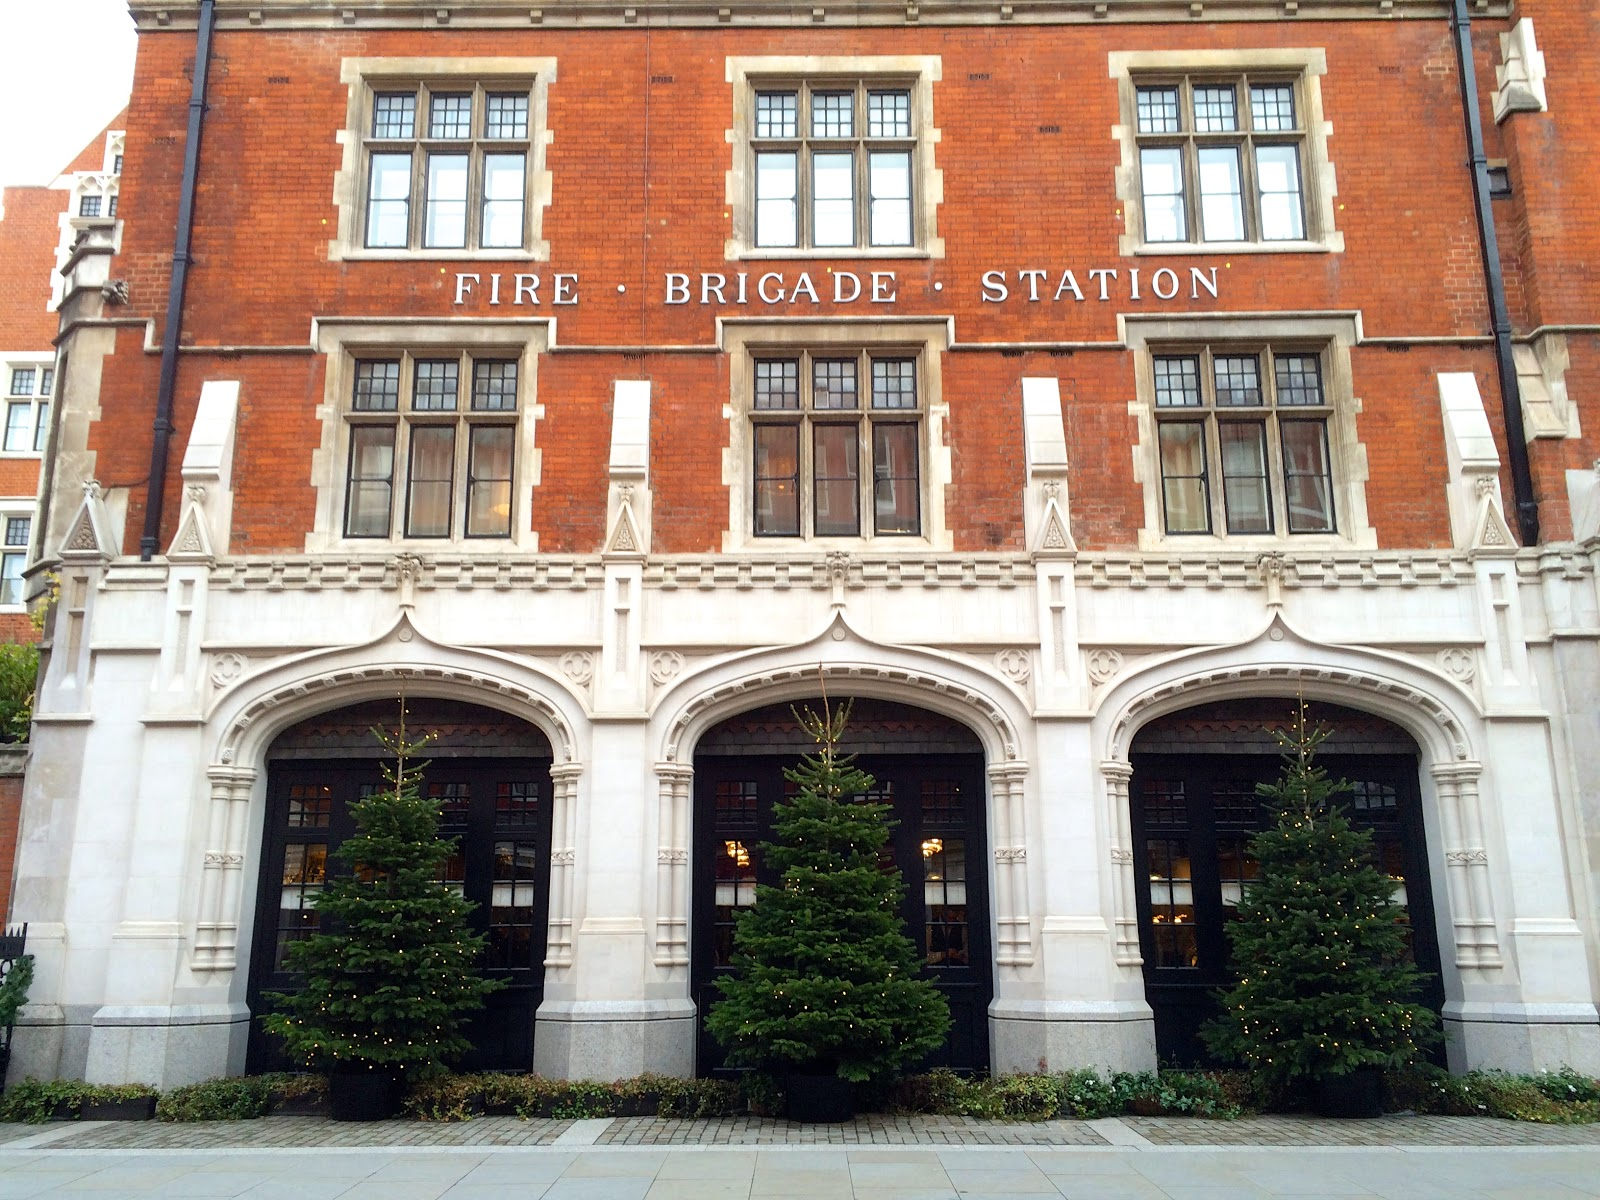 Chiltern firehouse marylebone christmas